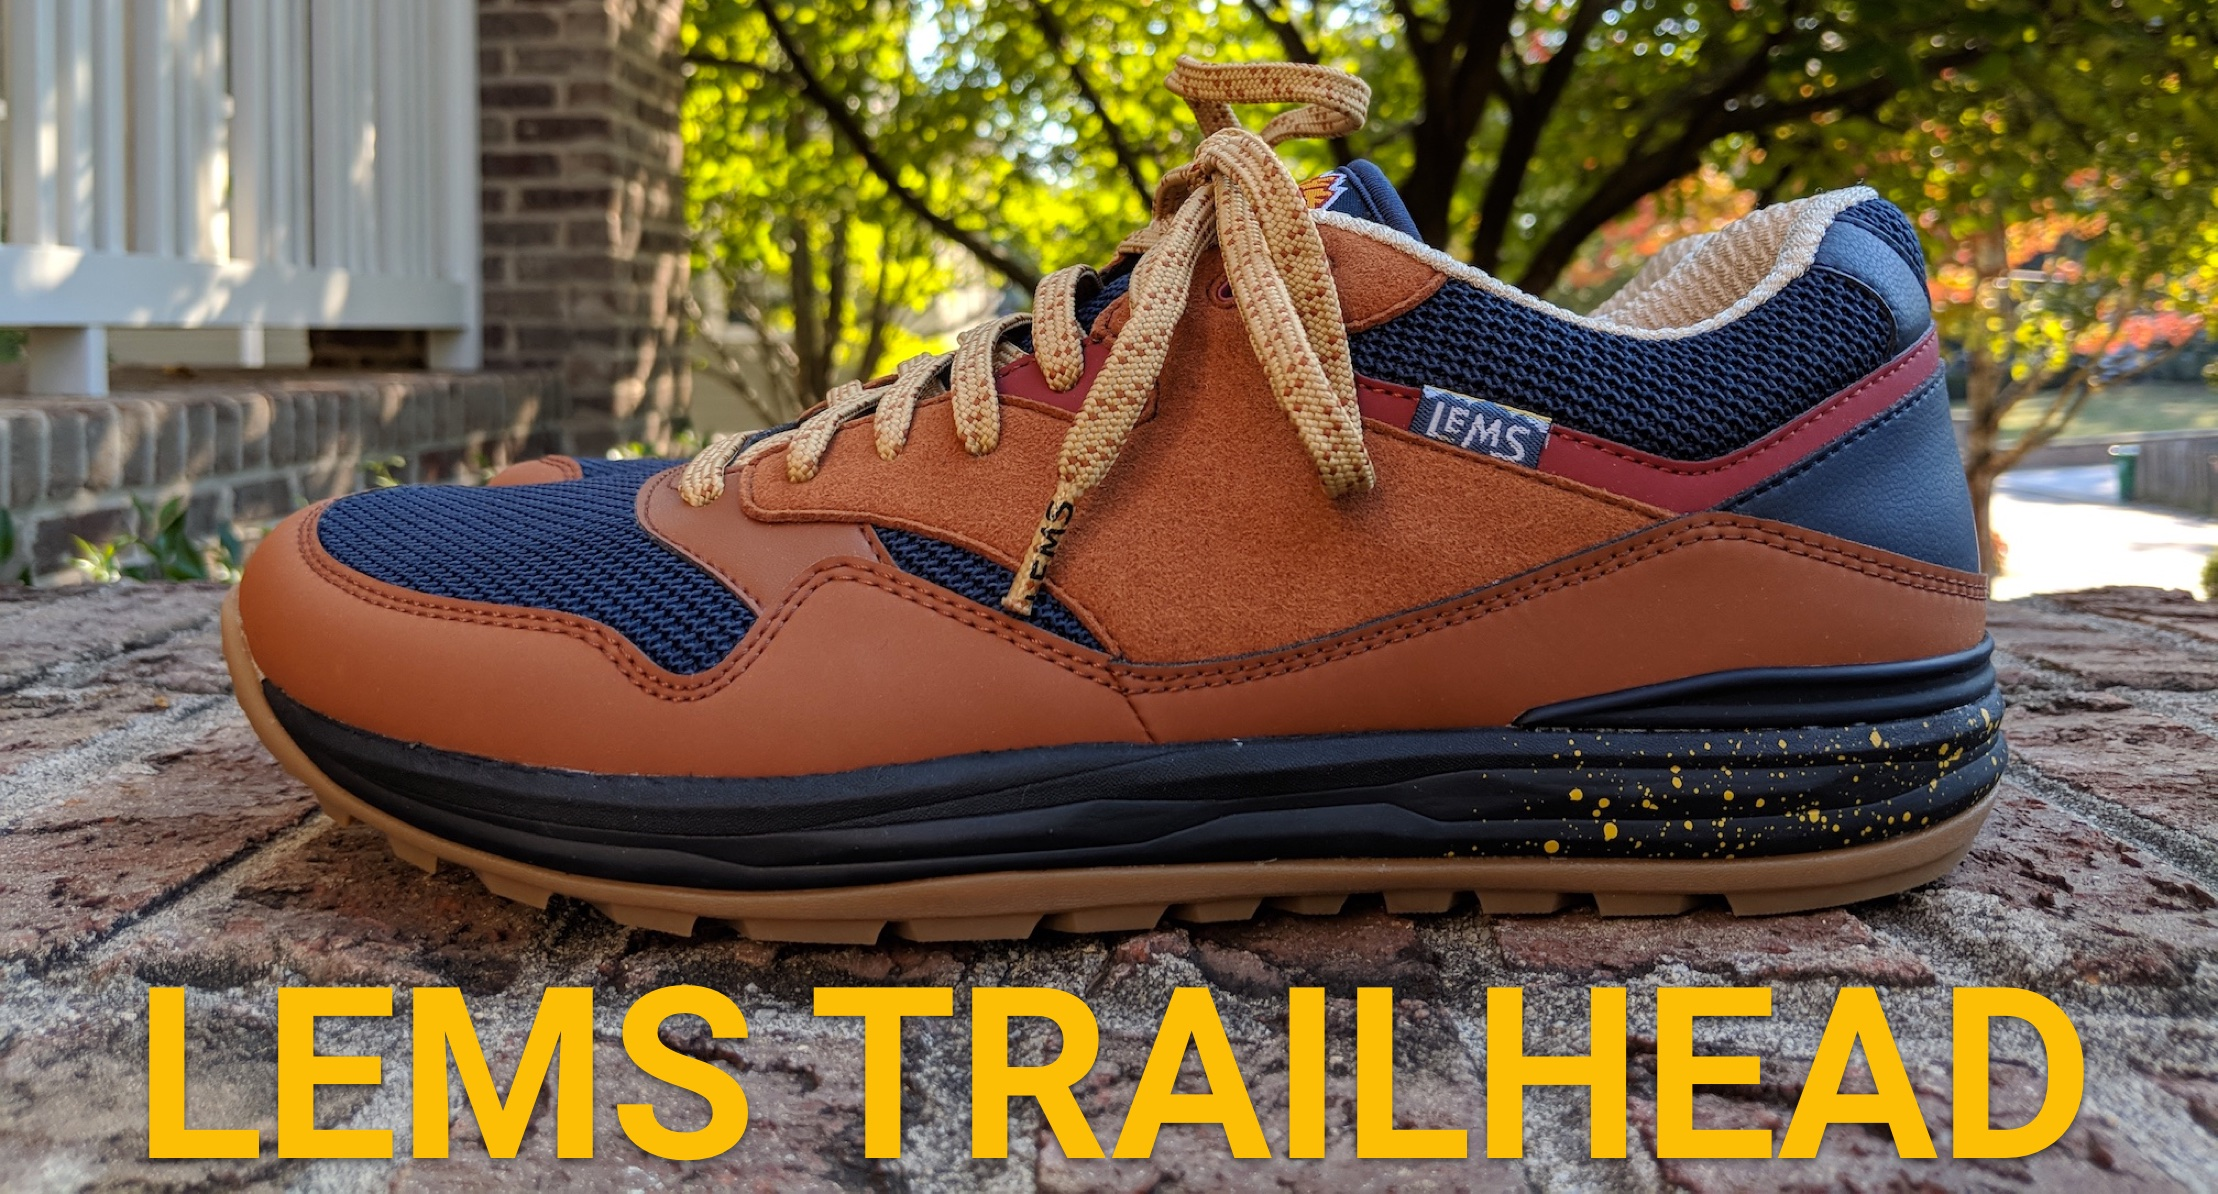 Lems Trailhead Shoes First Look Review